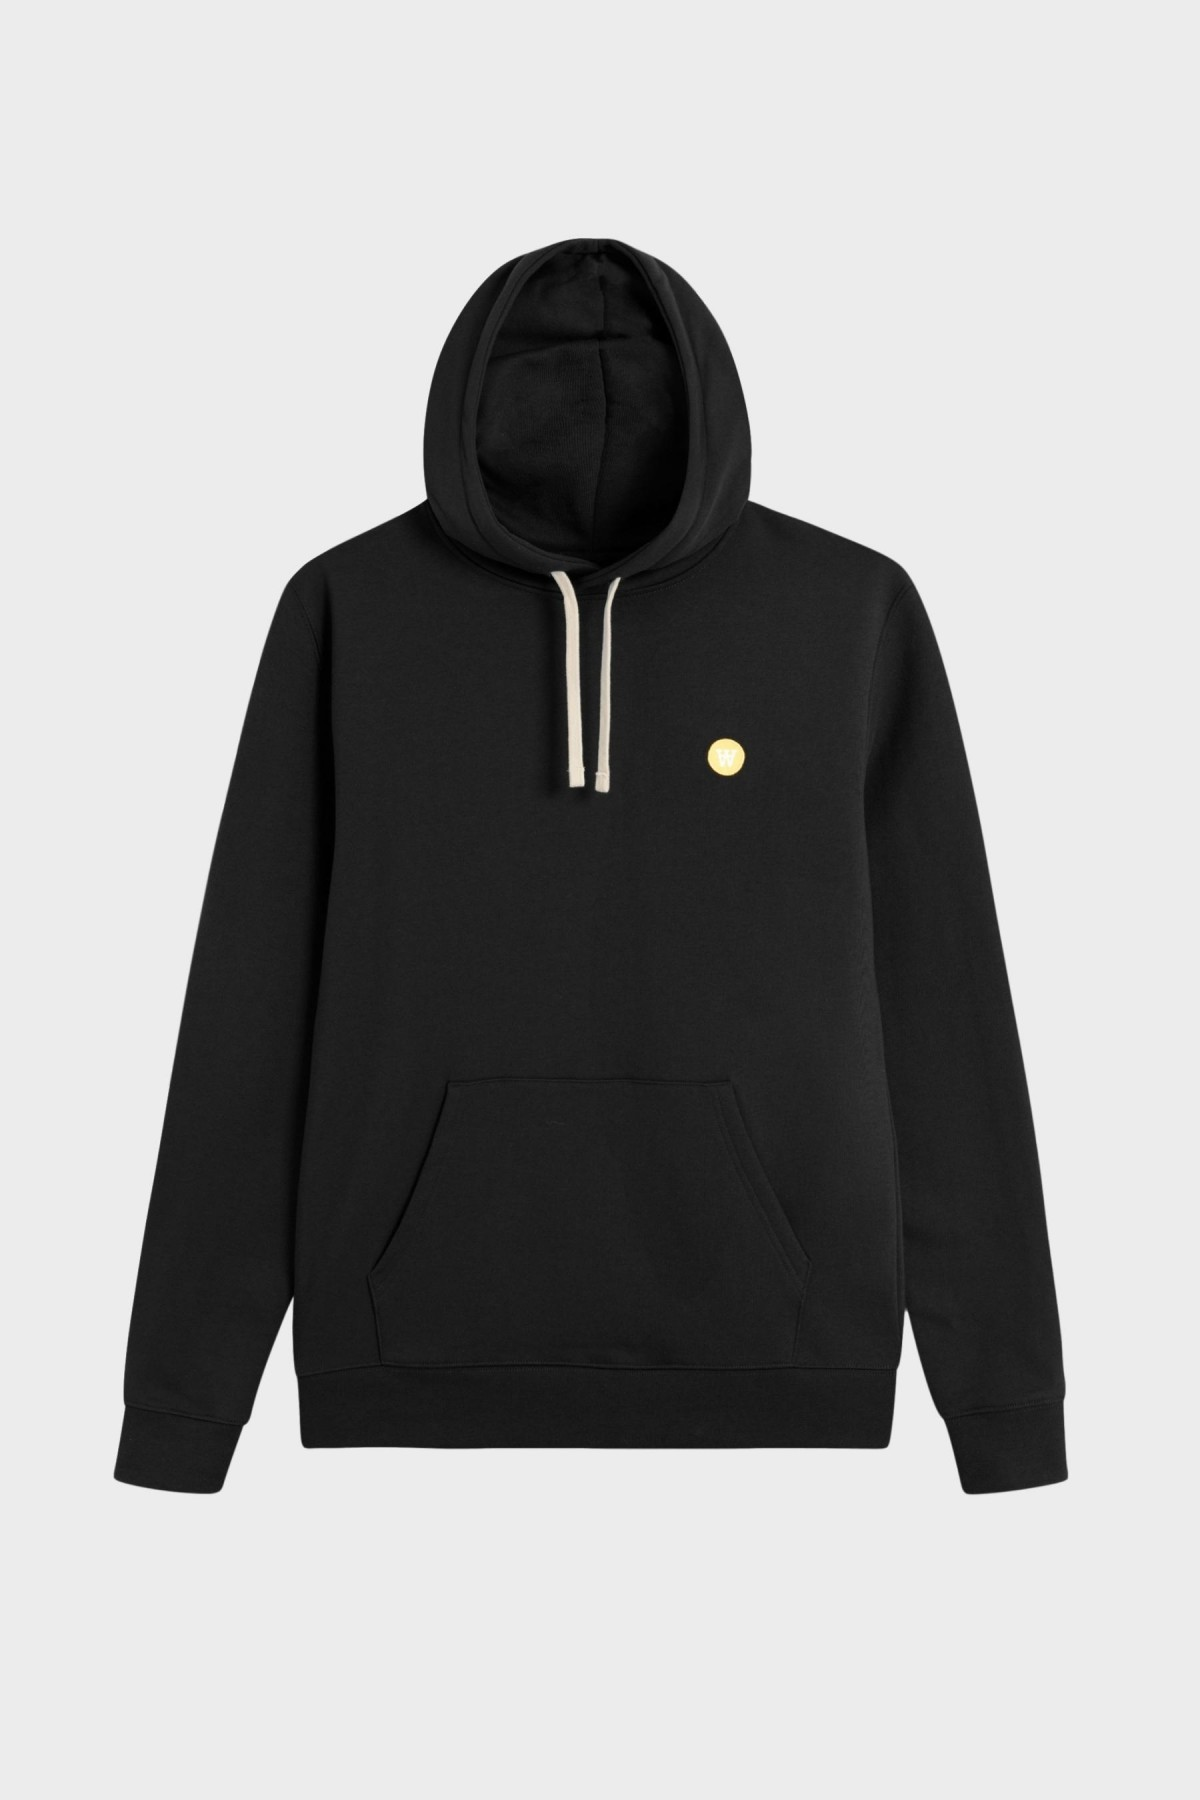 Wood Wood Ian Hoodie in Black